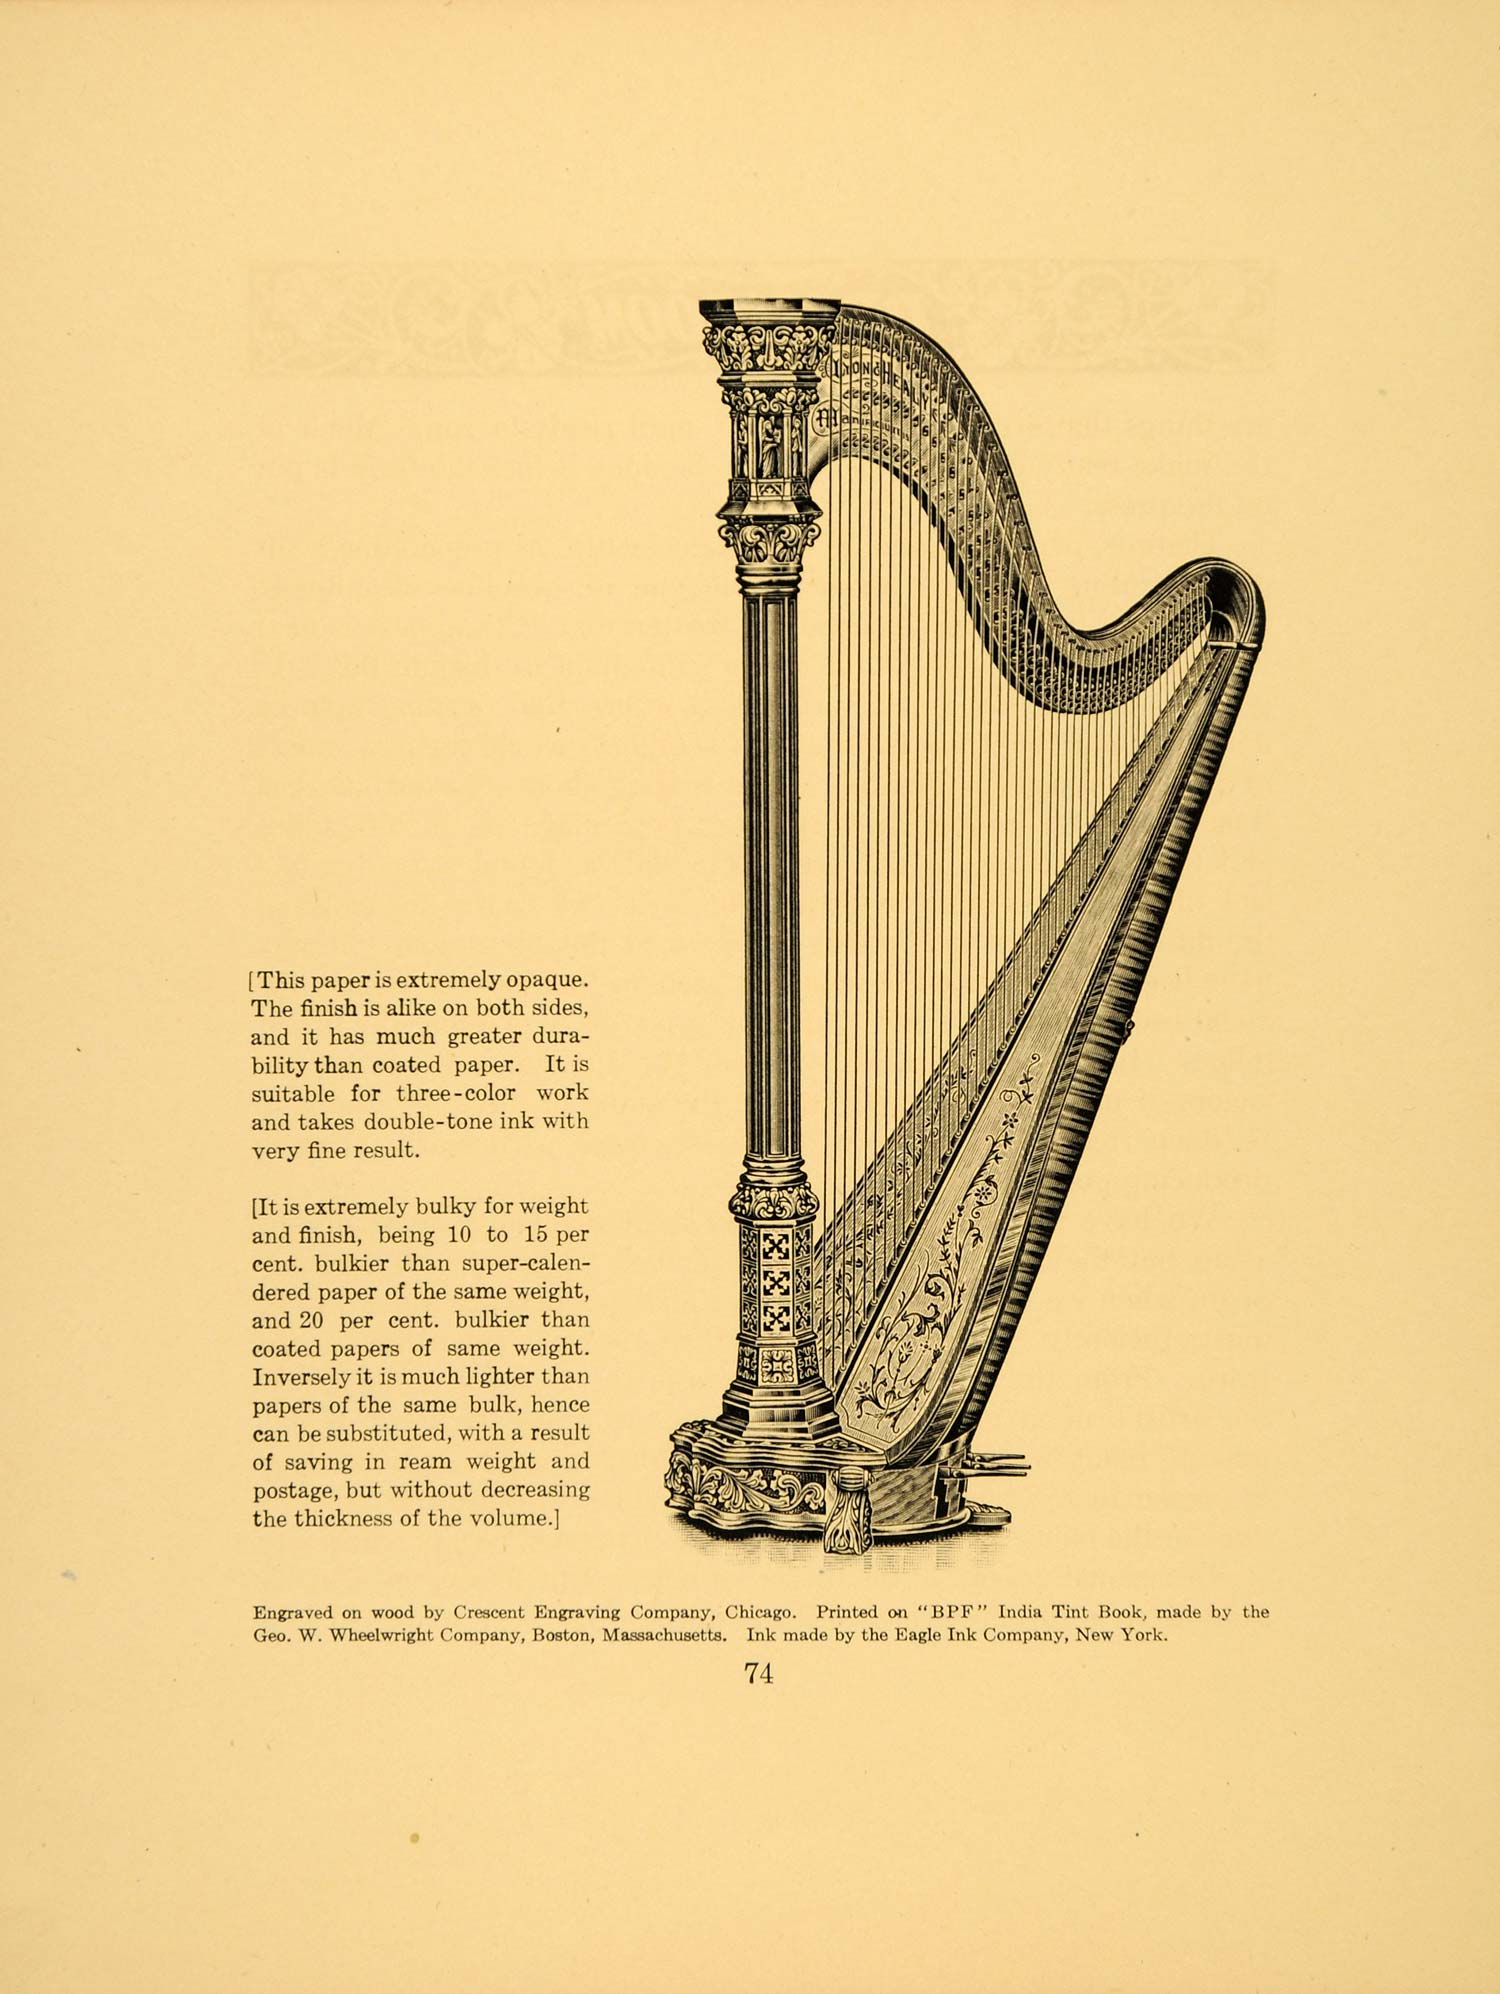 1913 Harp Stringed Instrument Vintage Engraving Print - ORIGINAL HISTORIC GAC1